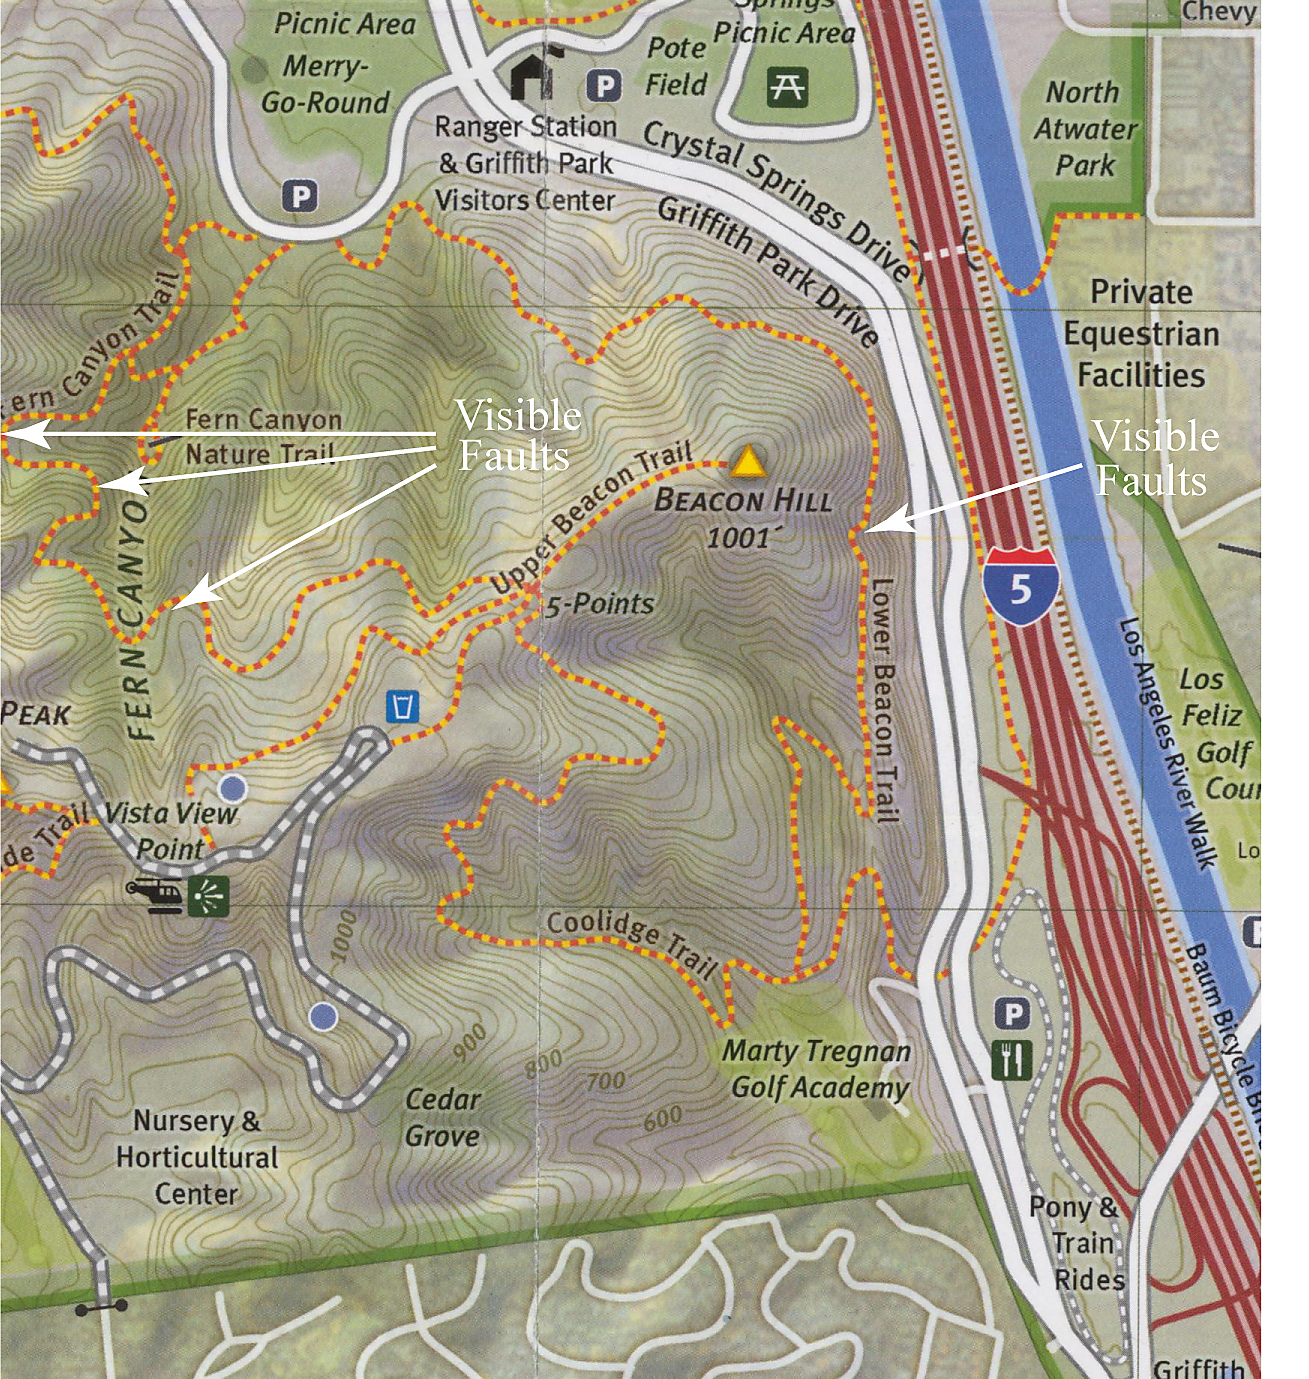 Griffith Park Los Angeles Map.Map Of Some Visible Faults Near Beacon Hill In Griffith Park Los